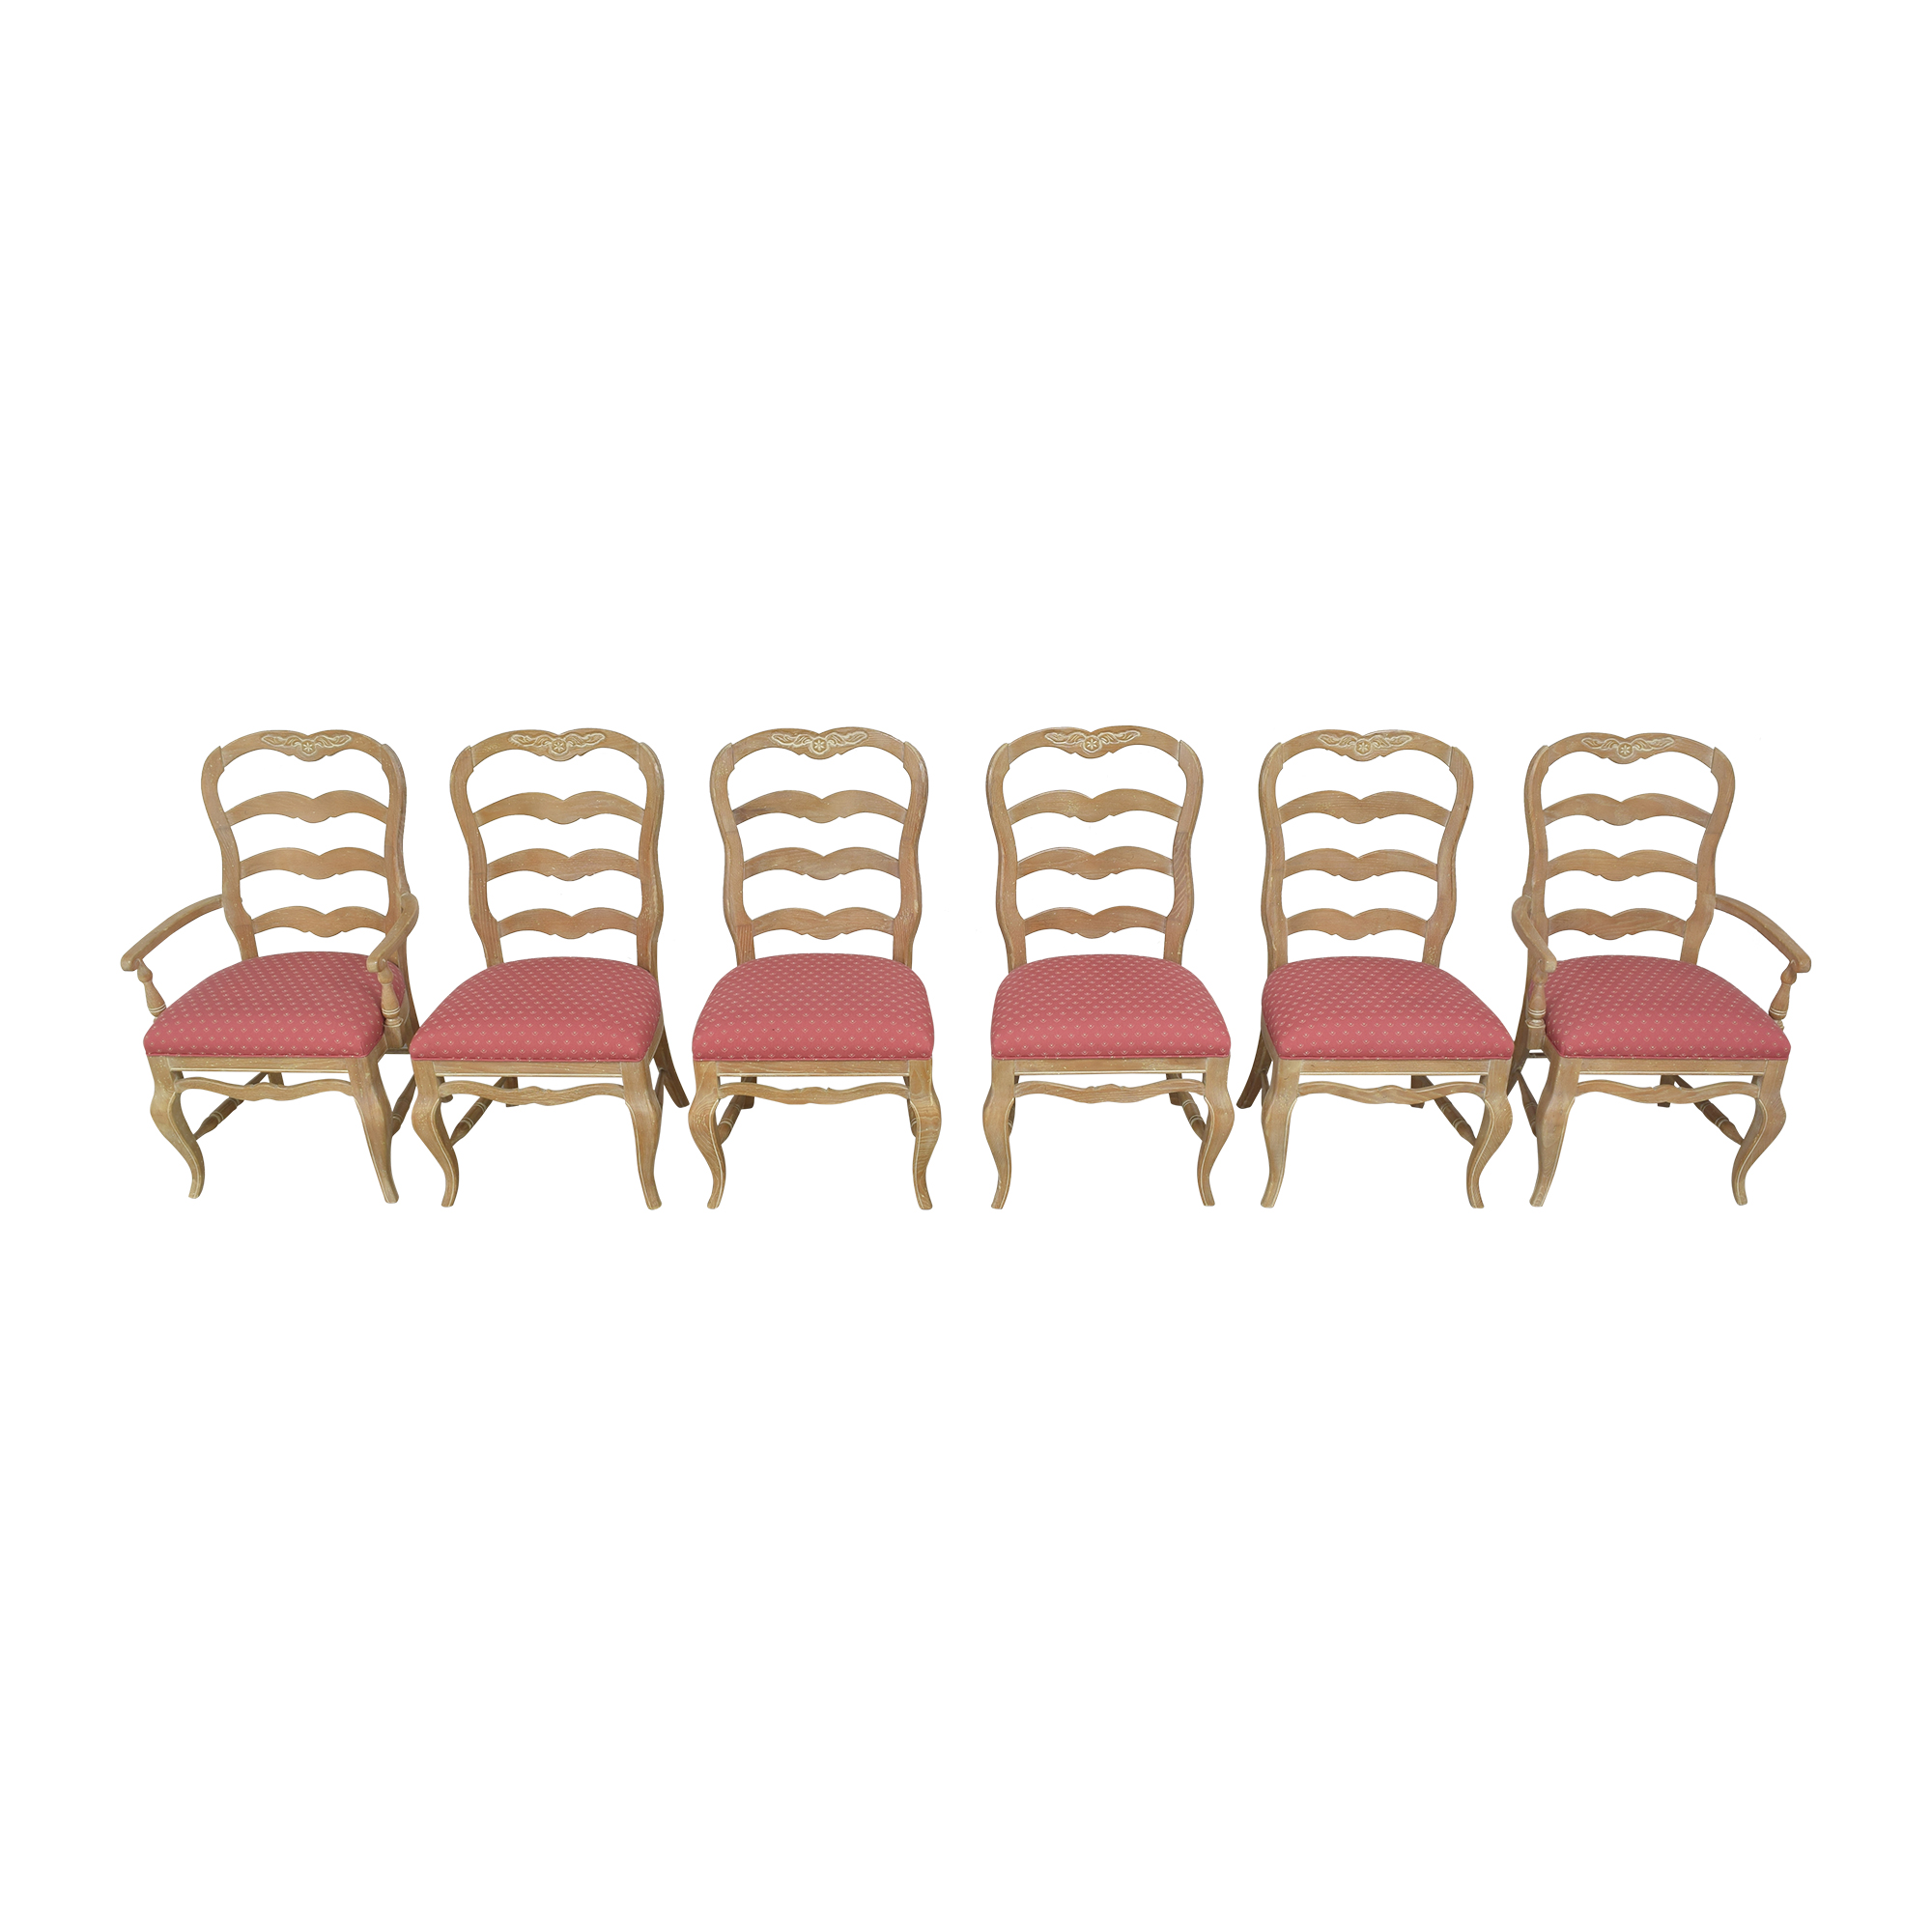 Pennsylvania House Pennsylvania House Country French Ladder Back Dining Chairs Dining Chairs